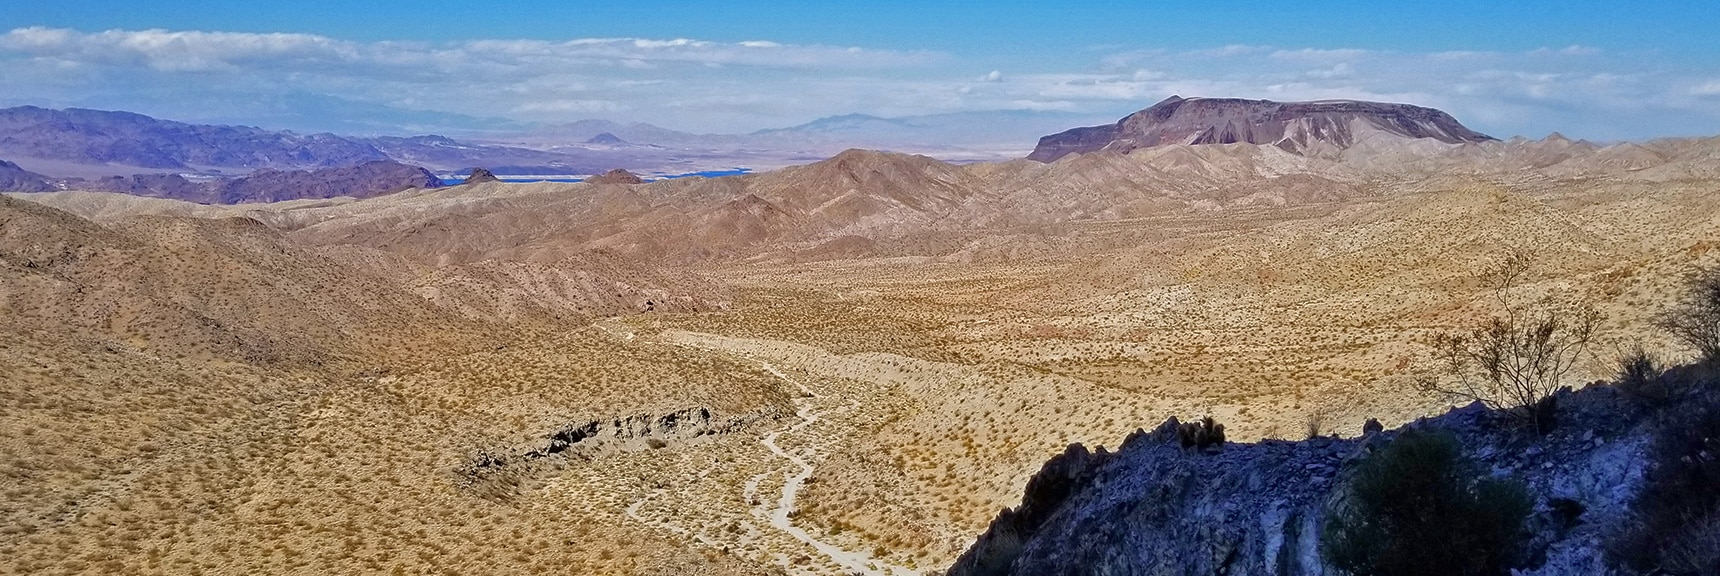 Horse Thief Canyon Road, Fortification Hill, Lake Mead, Frenchman Mt. Beyond | Mt Wilson, Black Mountains, Arizona, Lake Mead National Recreation Area